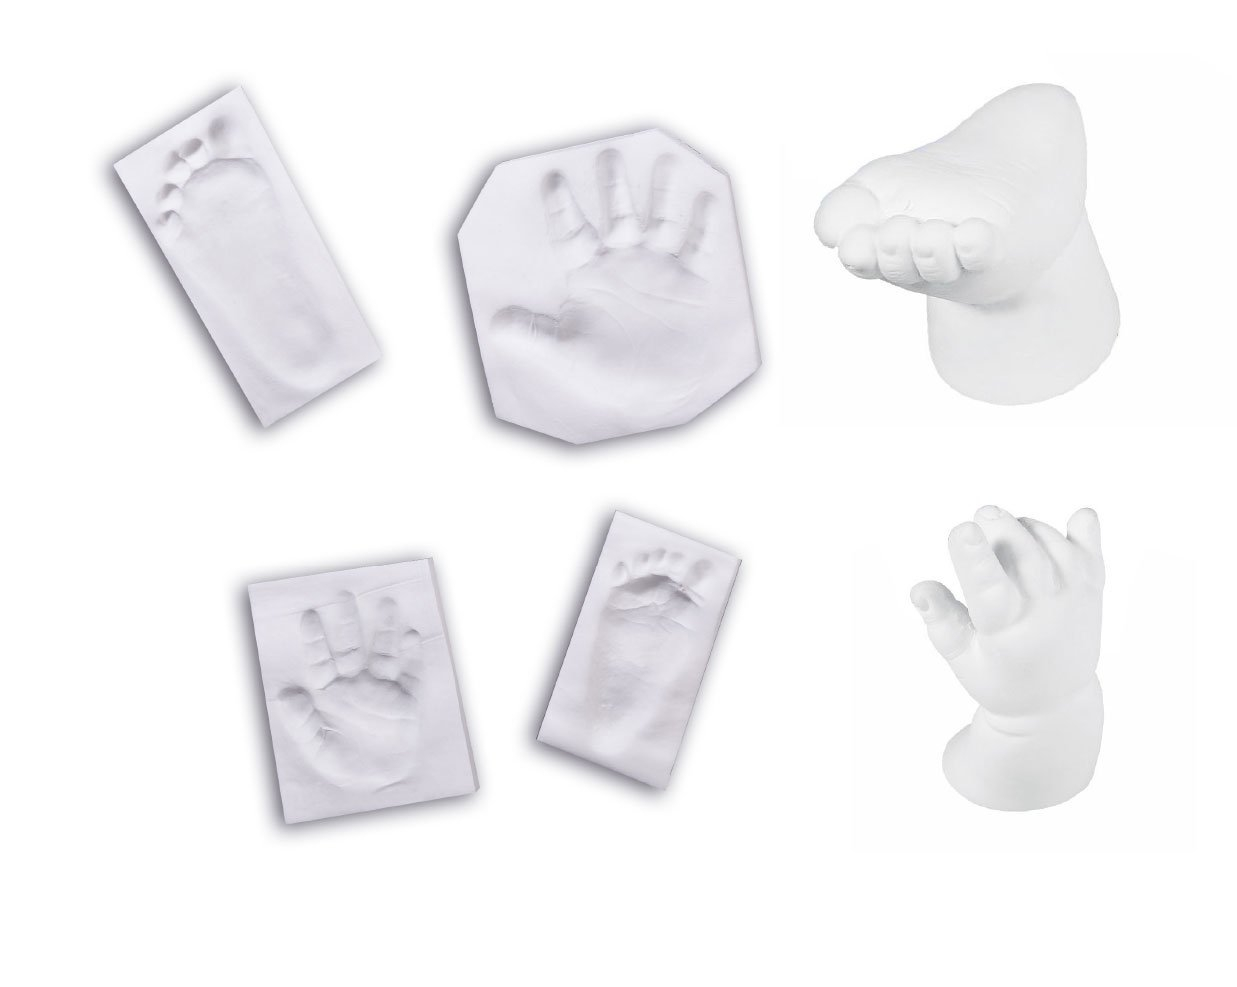 Party Kit Baby Art Bébé Confort Outlet